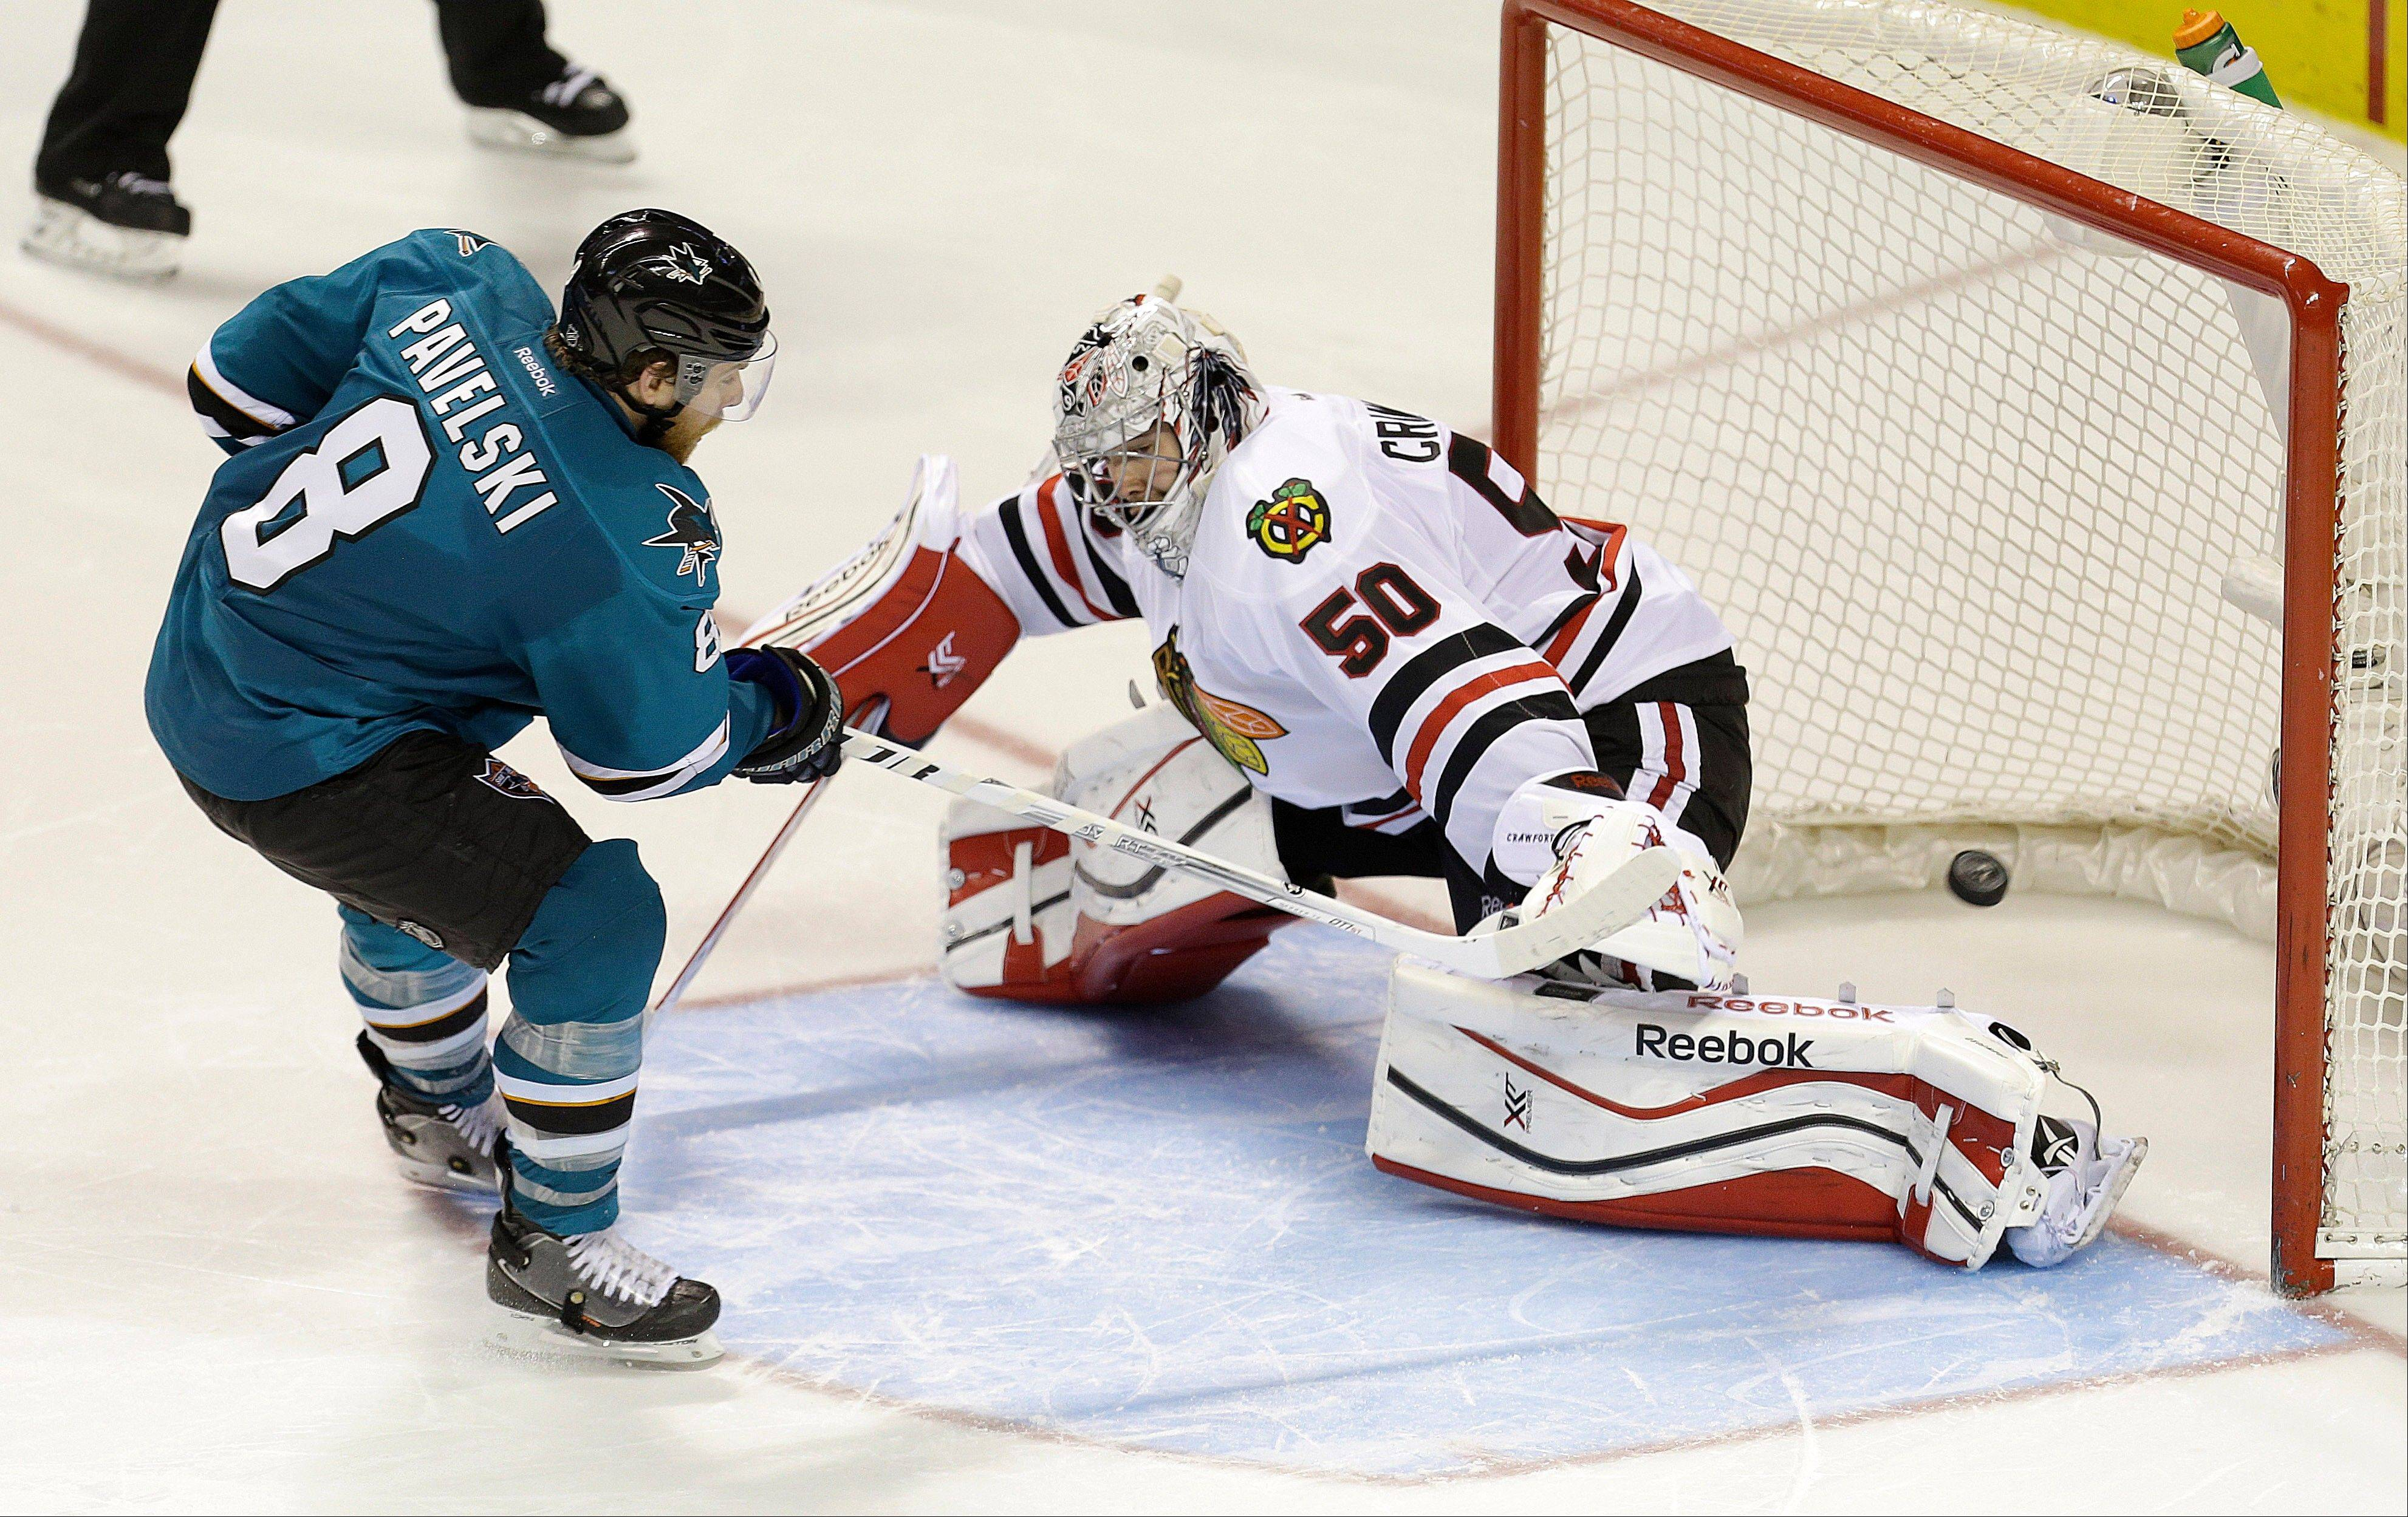 Associated Press The Sharks� Joe Pavelski scores a goal in a shootout, beating Blackhawks goalie Corey Crawford on Saturday night in San Jose, Calif.